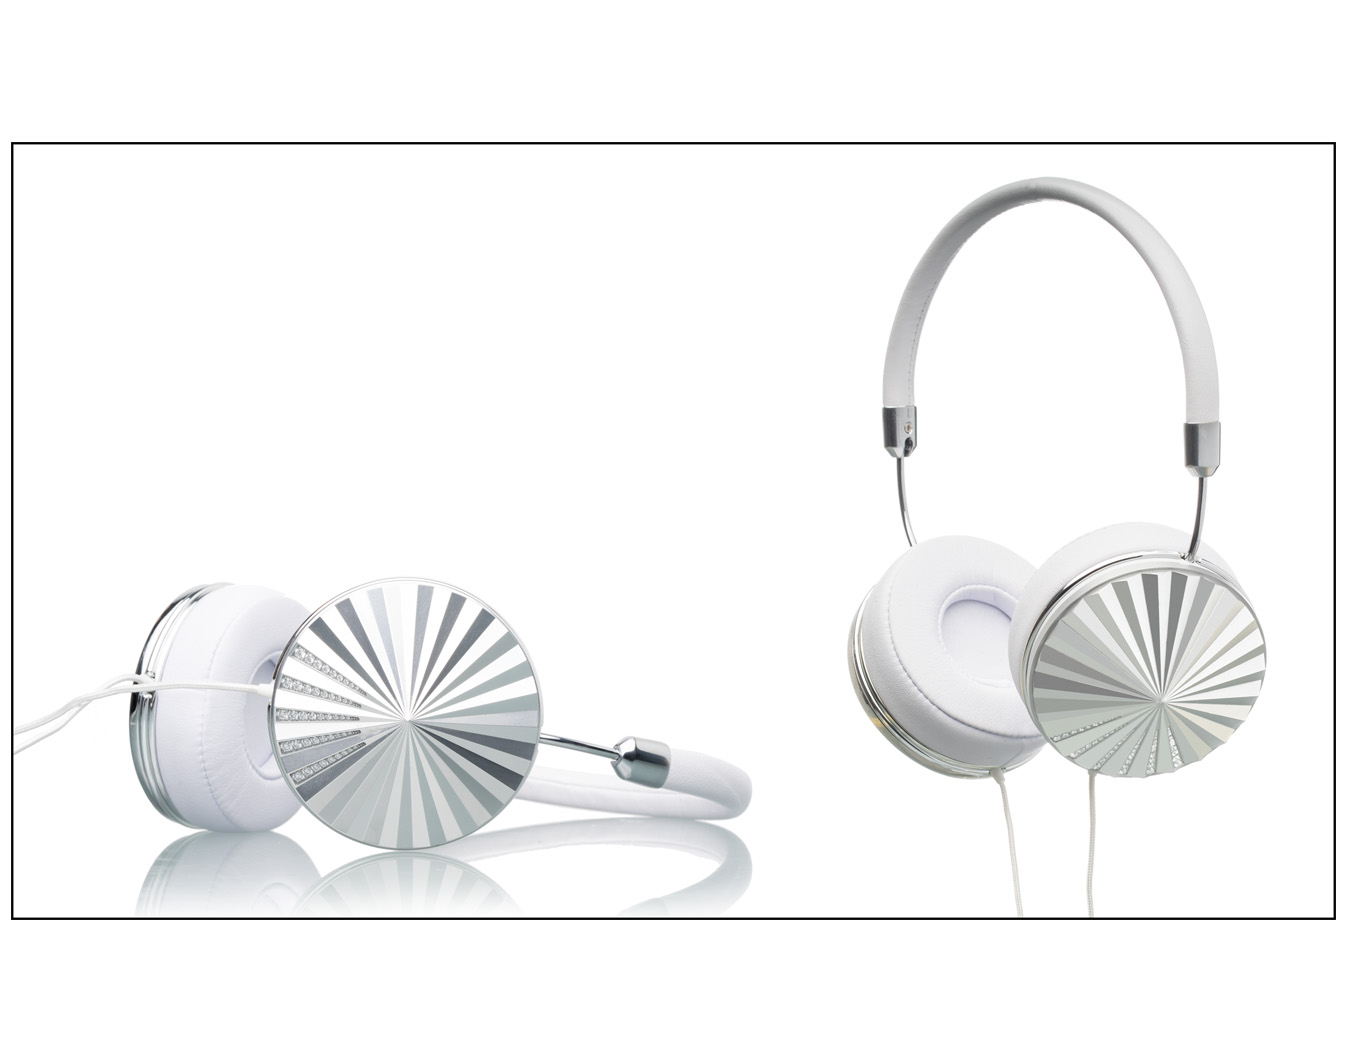 Frends headphones product photo